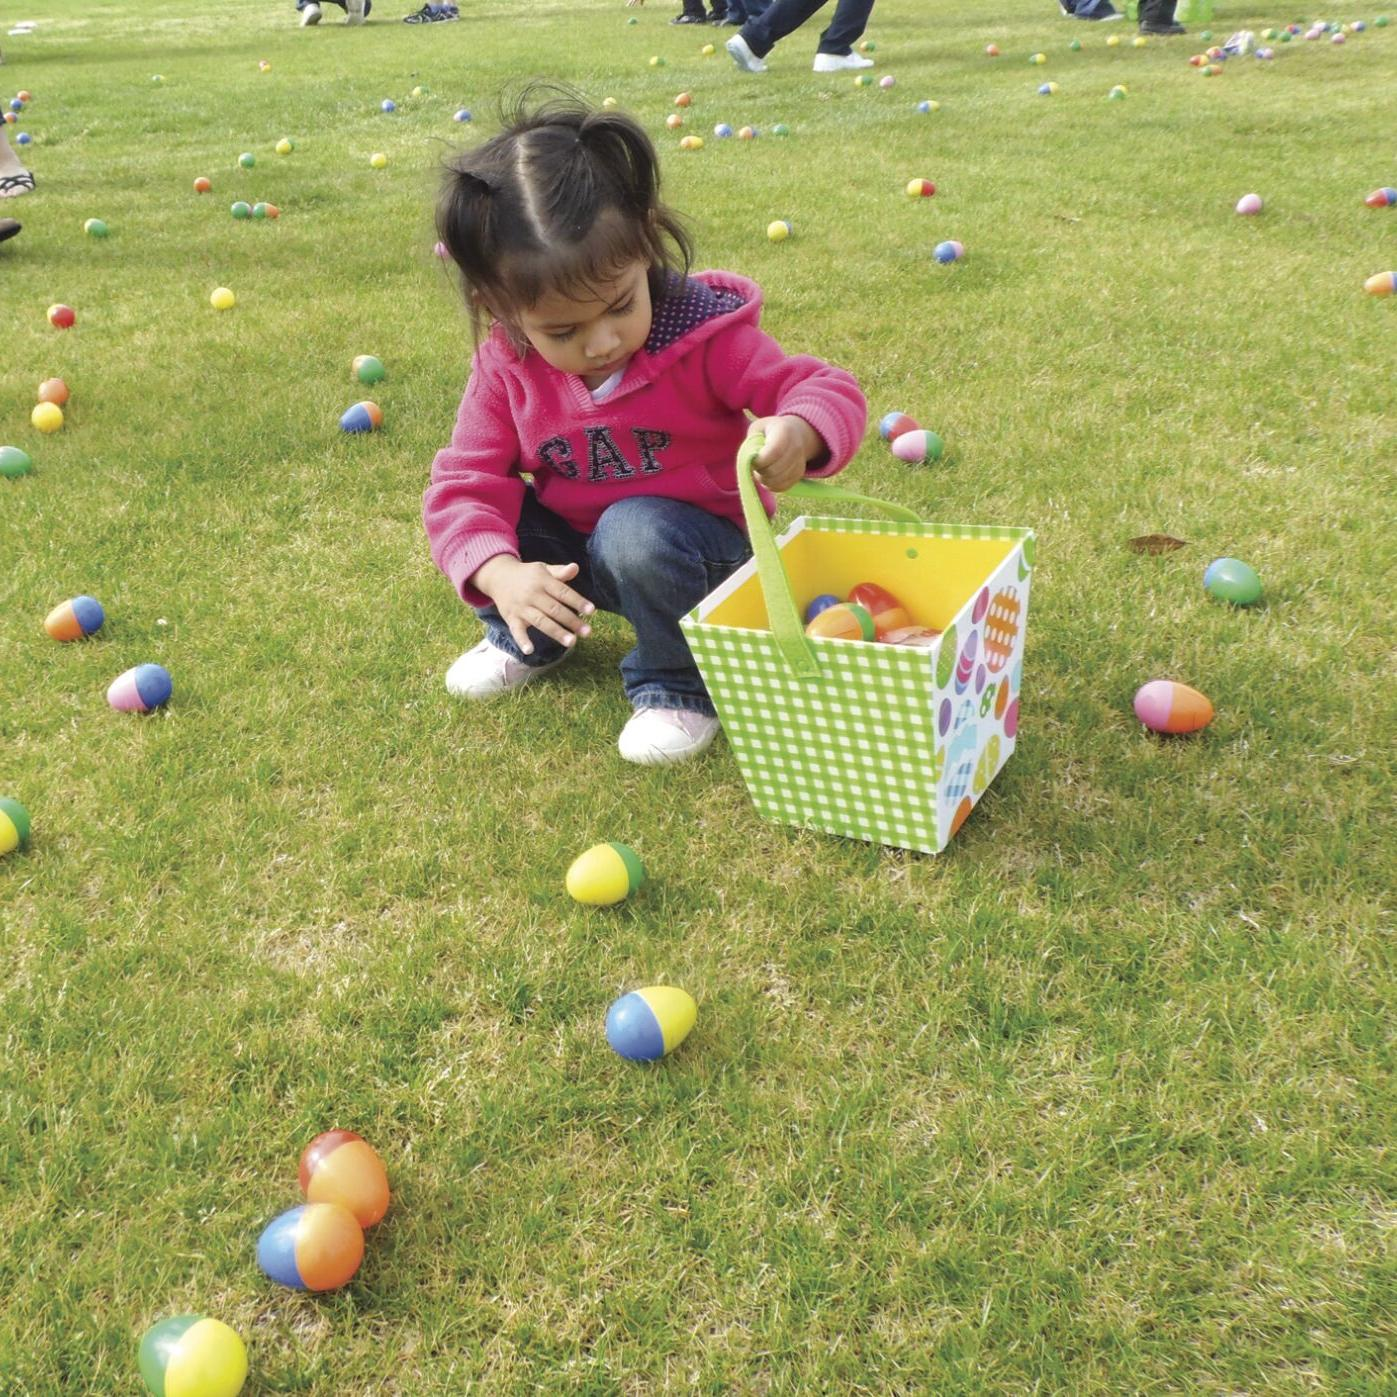 Tonight S Eggstravanza In Greenville First Of Many Easter Egg Hunts In Hunt County Area News Heraldbanner Com